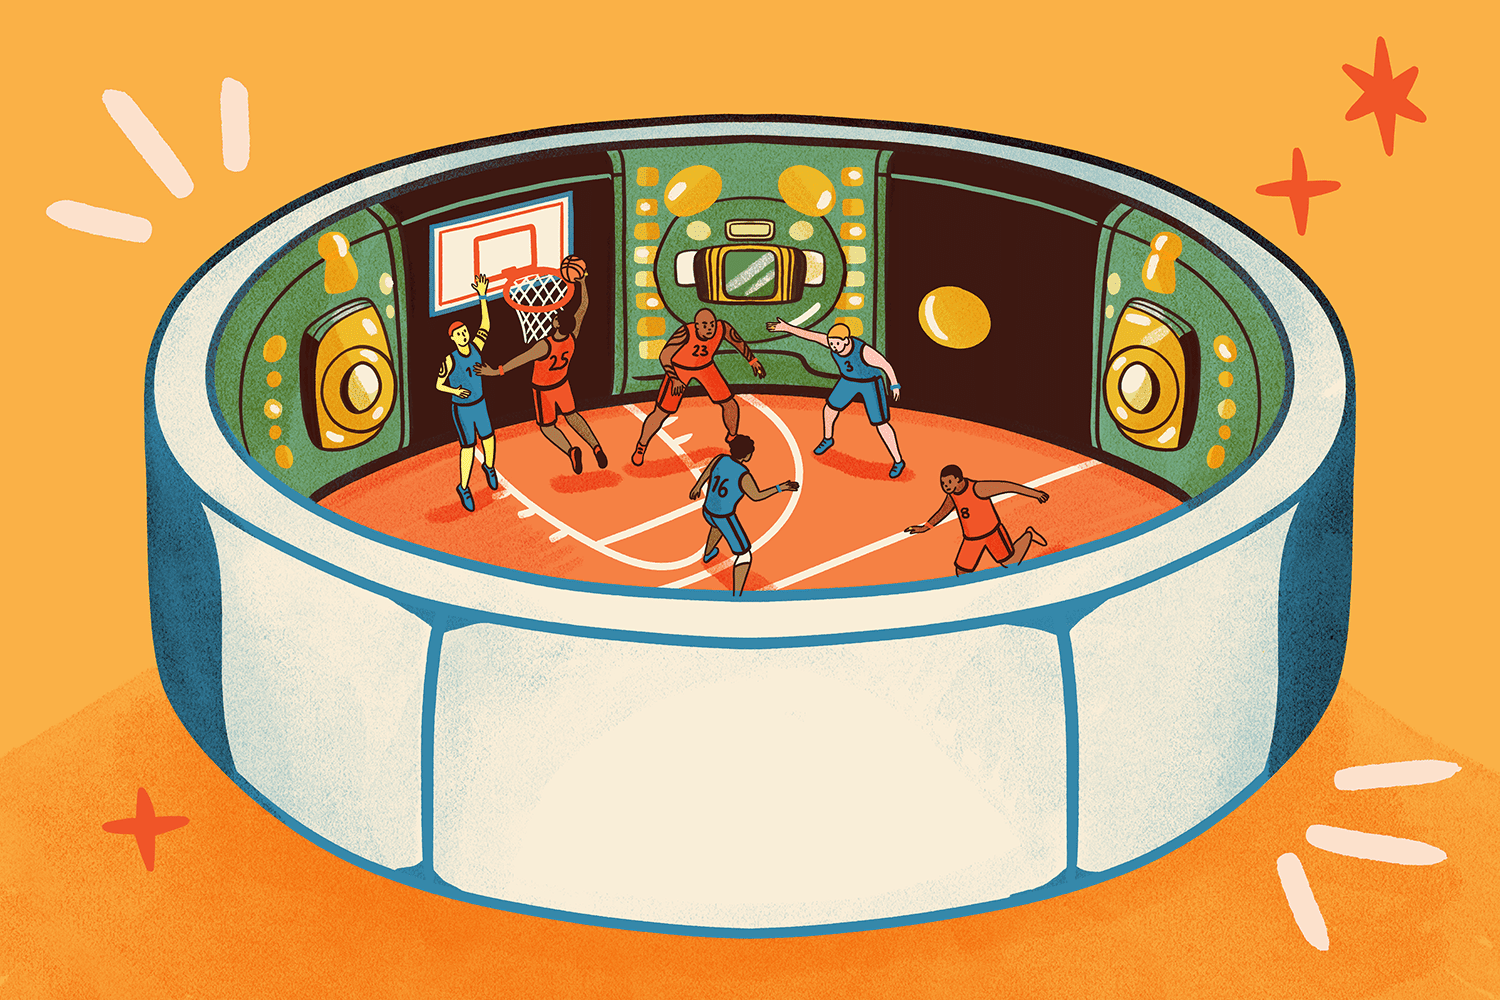 Illustration of NBA players playing in the bubble surrounded by virtual screens